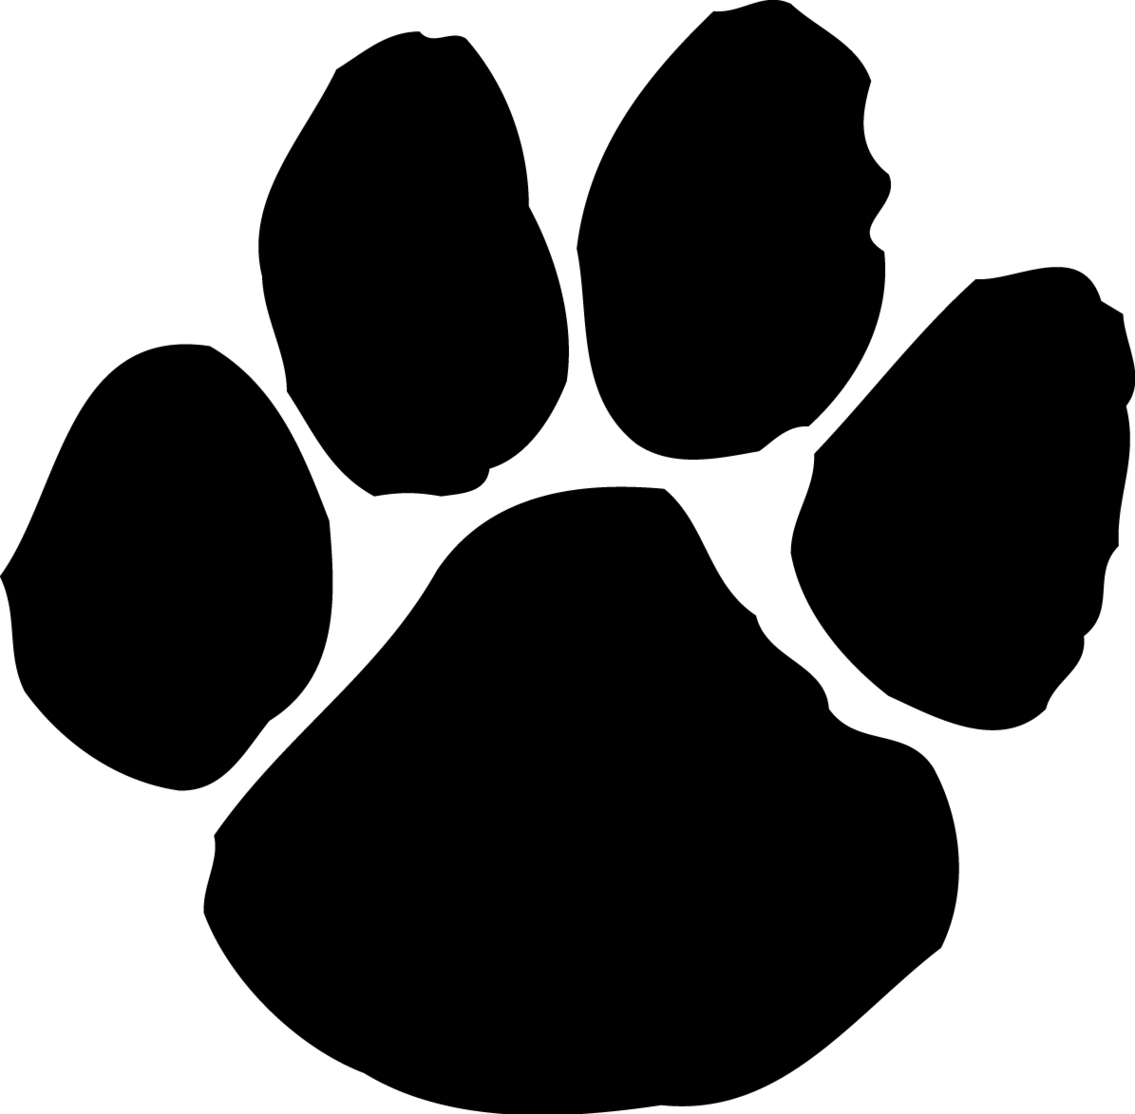 Dog Paw Logo Clipart - Free to use Clip Art Resource